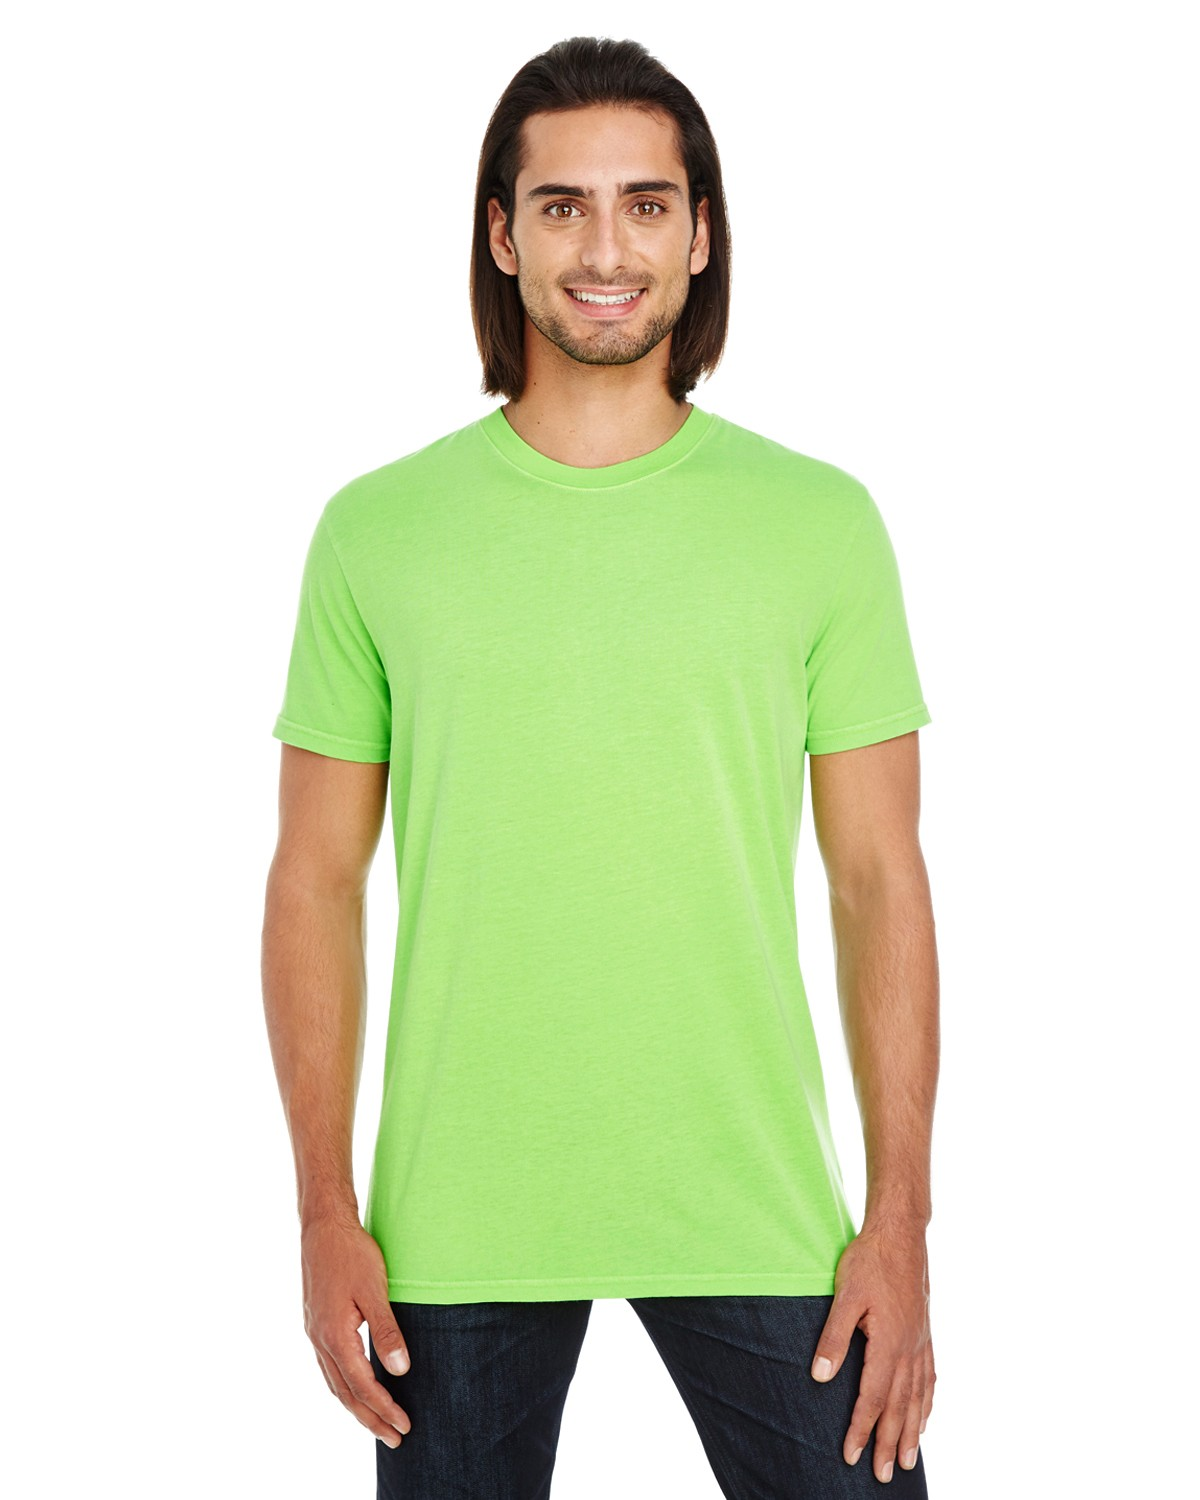 130A Threadfast Apparel LIME